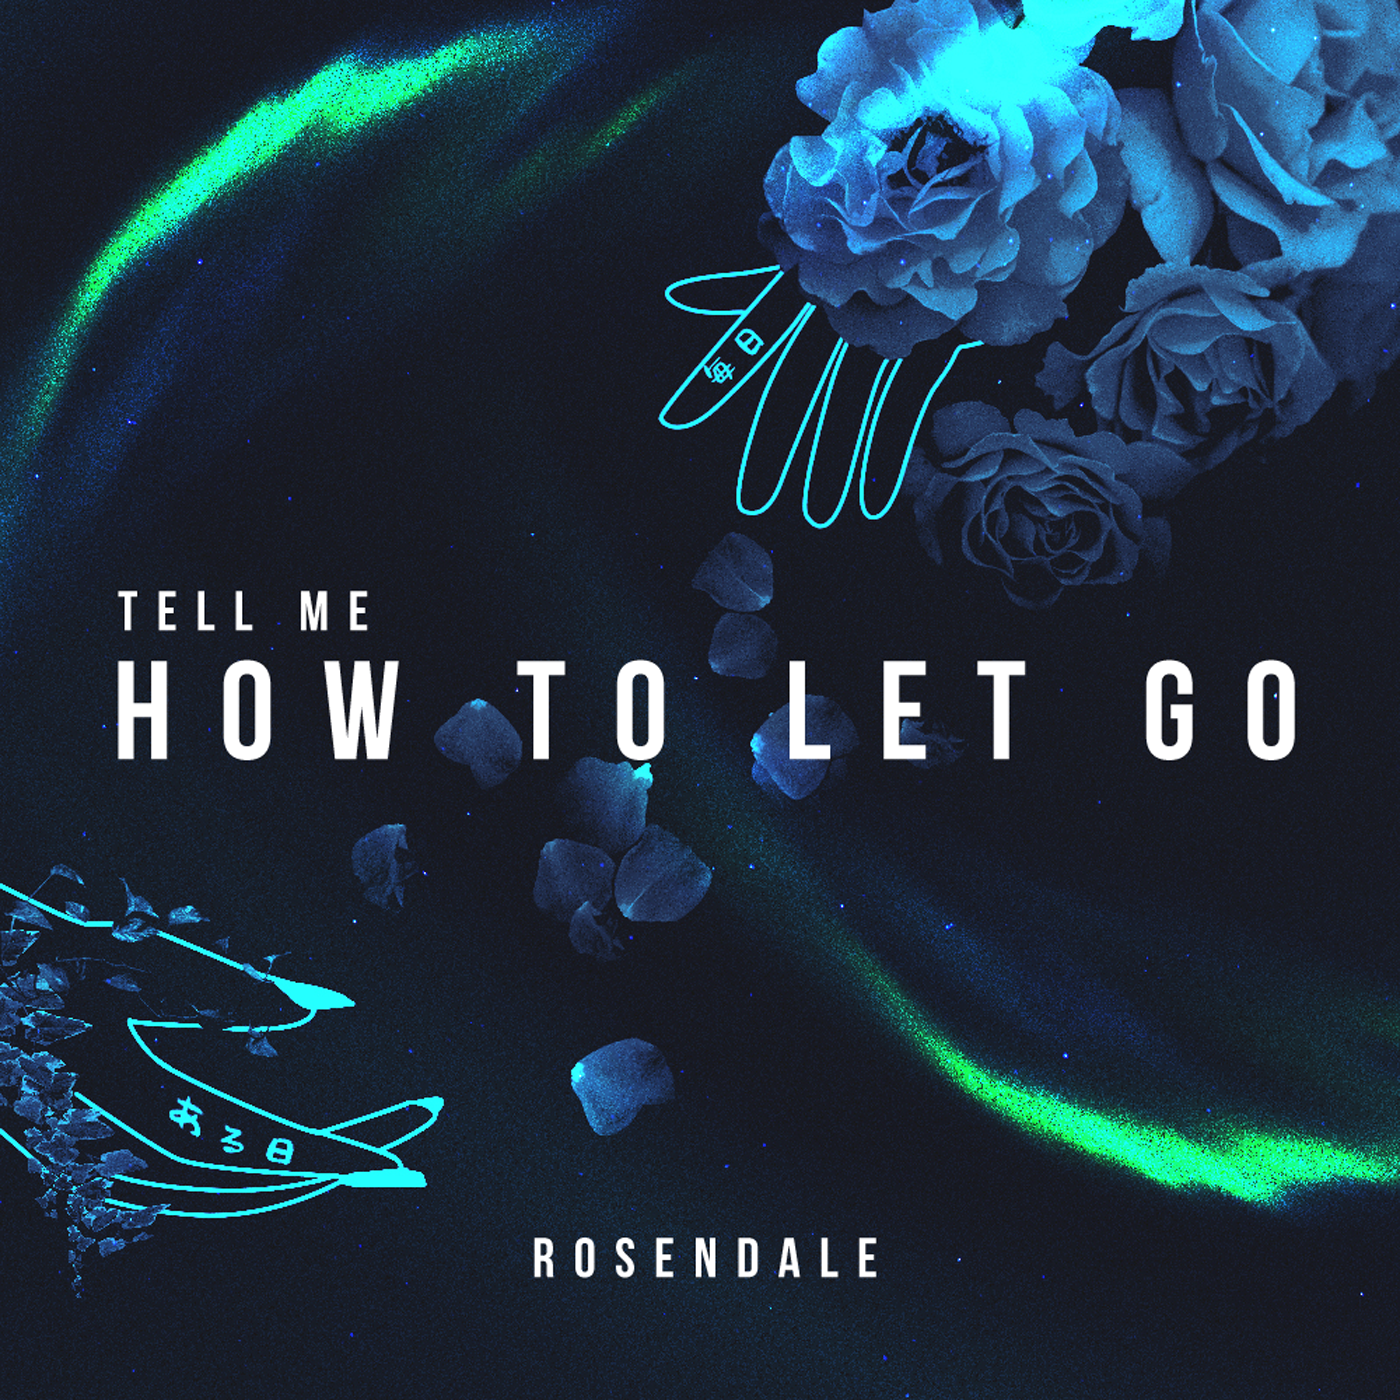 Rosendale - Tell Me How To Let Go (Official Audio) Image